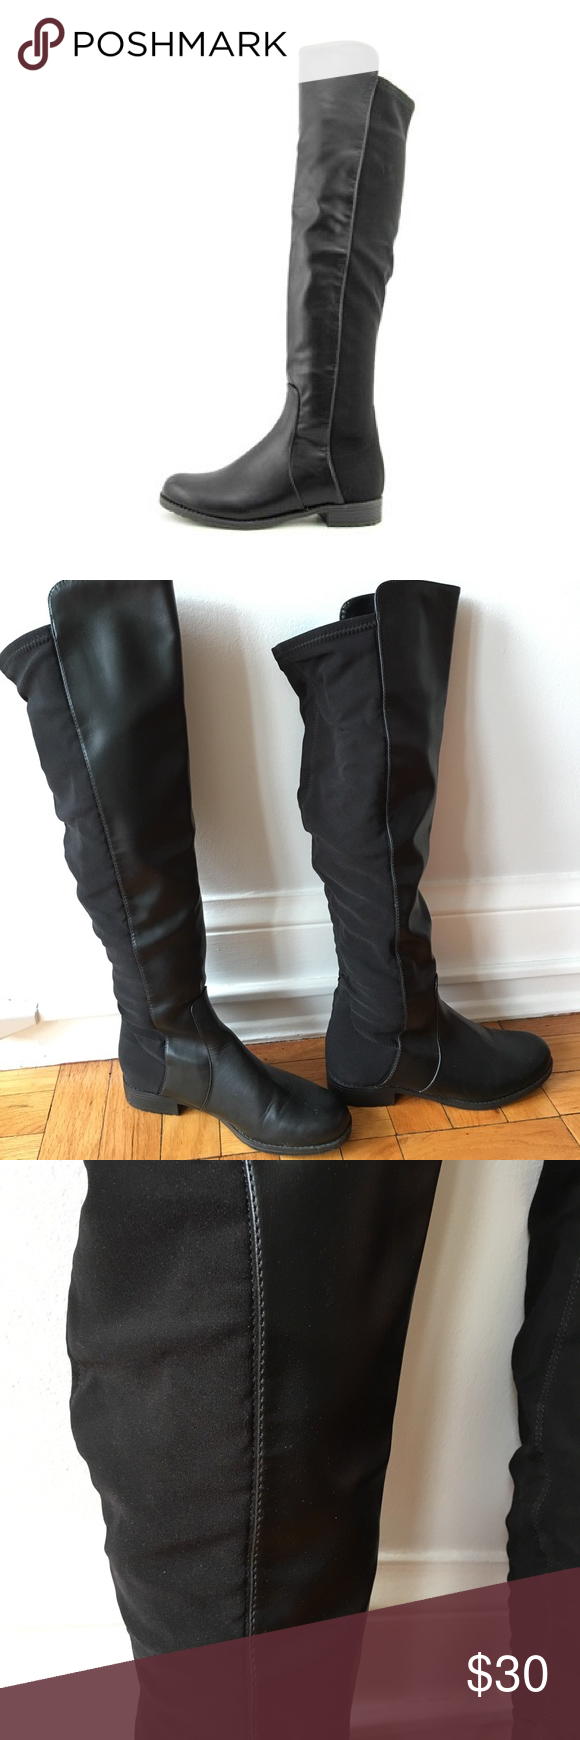 d55909ef814 Unisa Gillean 2 Round Toe Synthetic Over Knee Boot Only worn once! The Unisa  Gillean 2 Boots feature a Synthetic upper with a Round Toe.